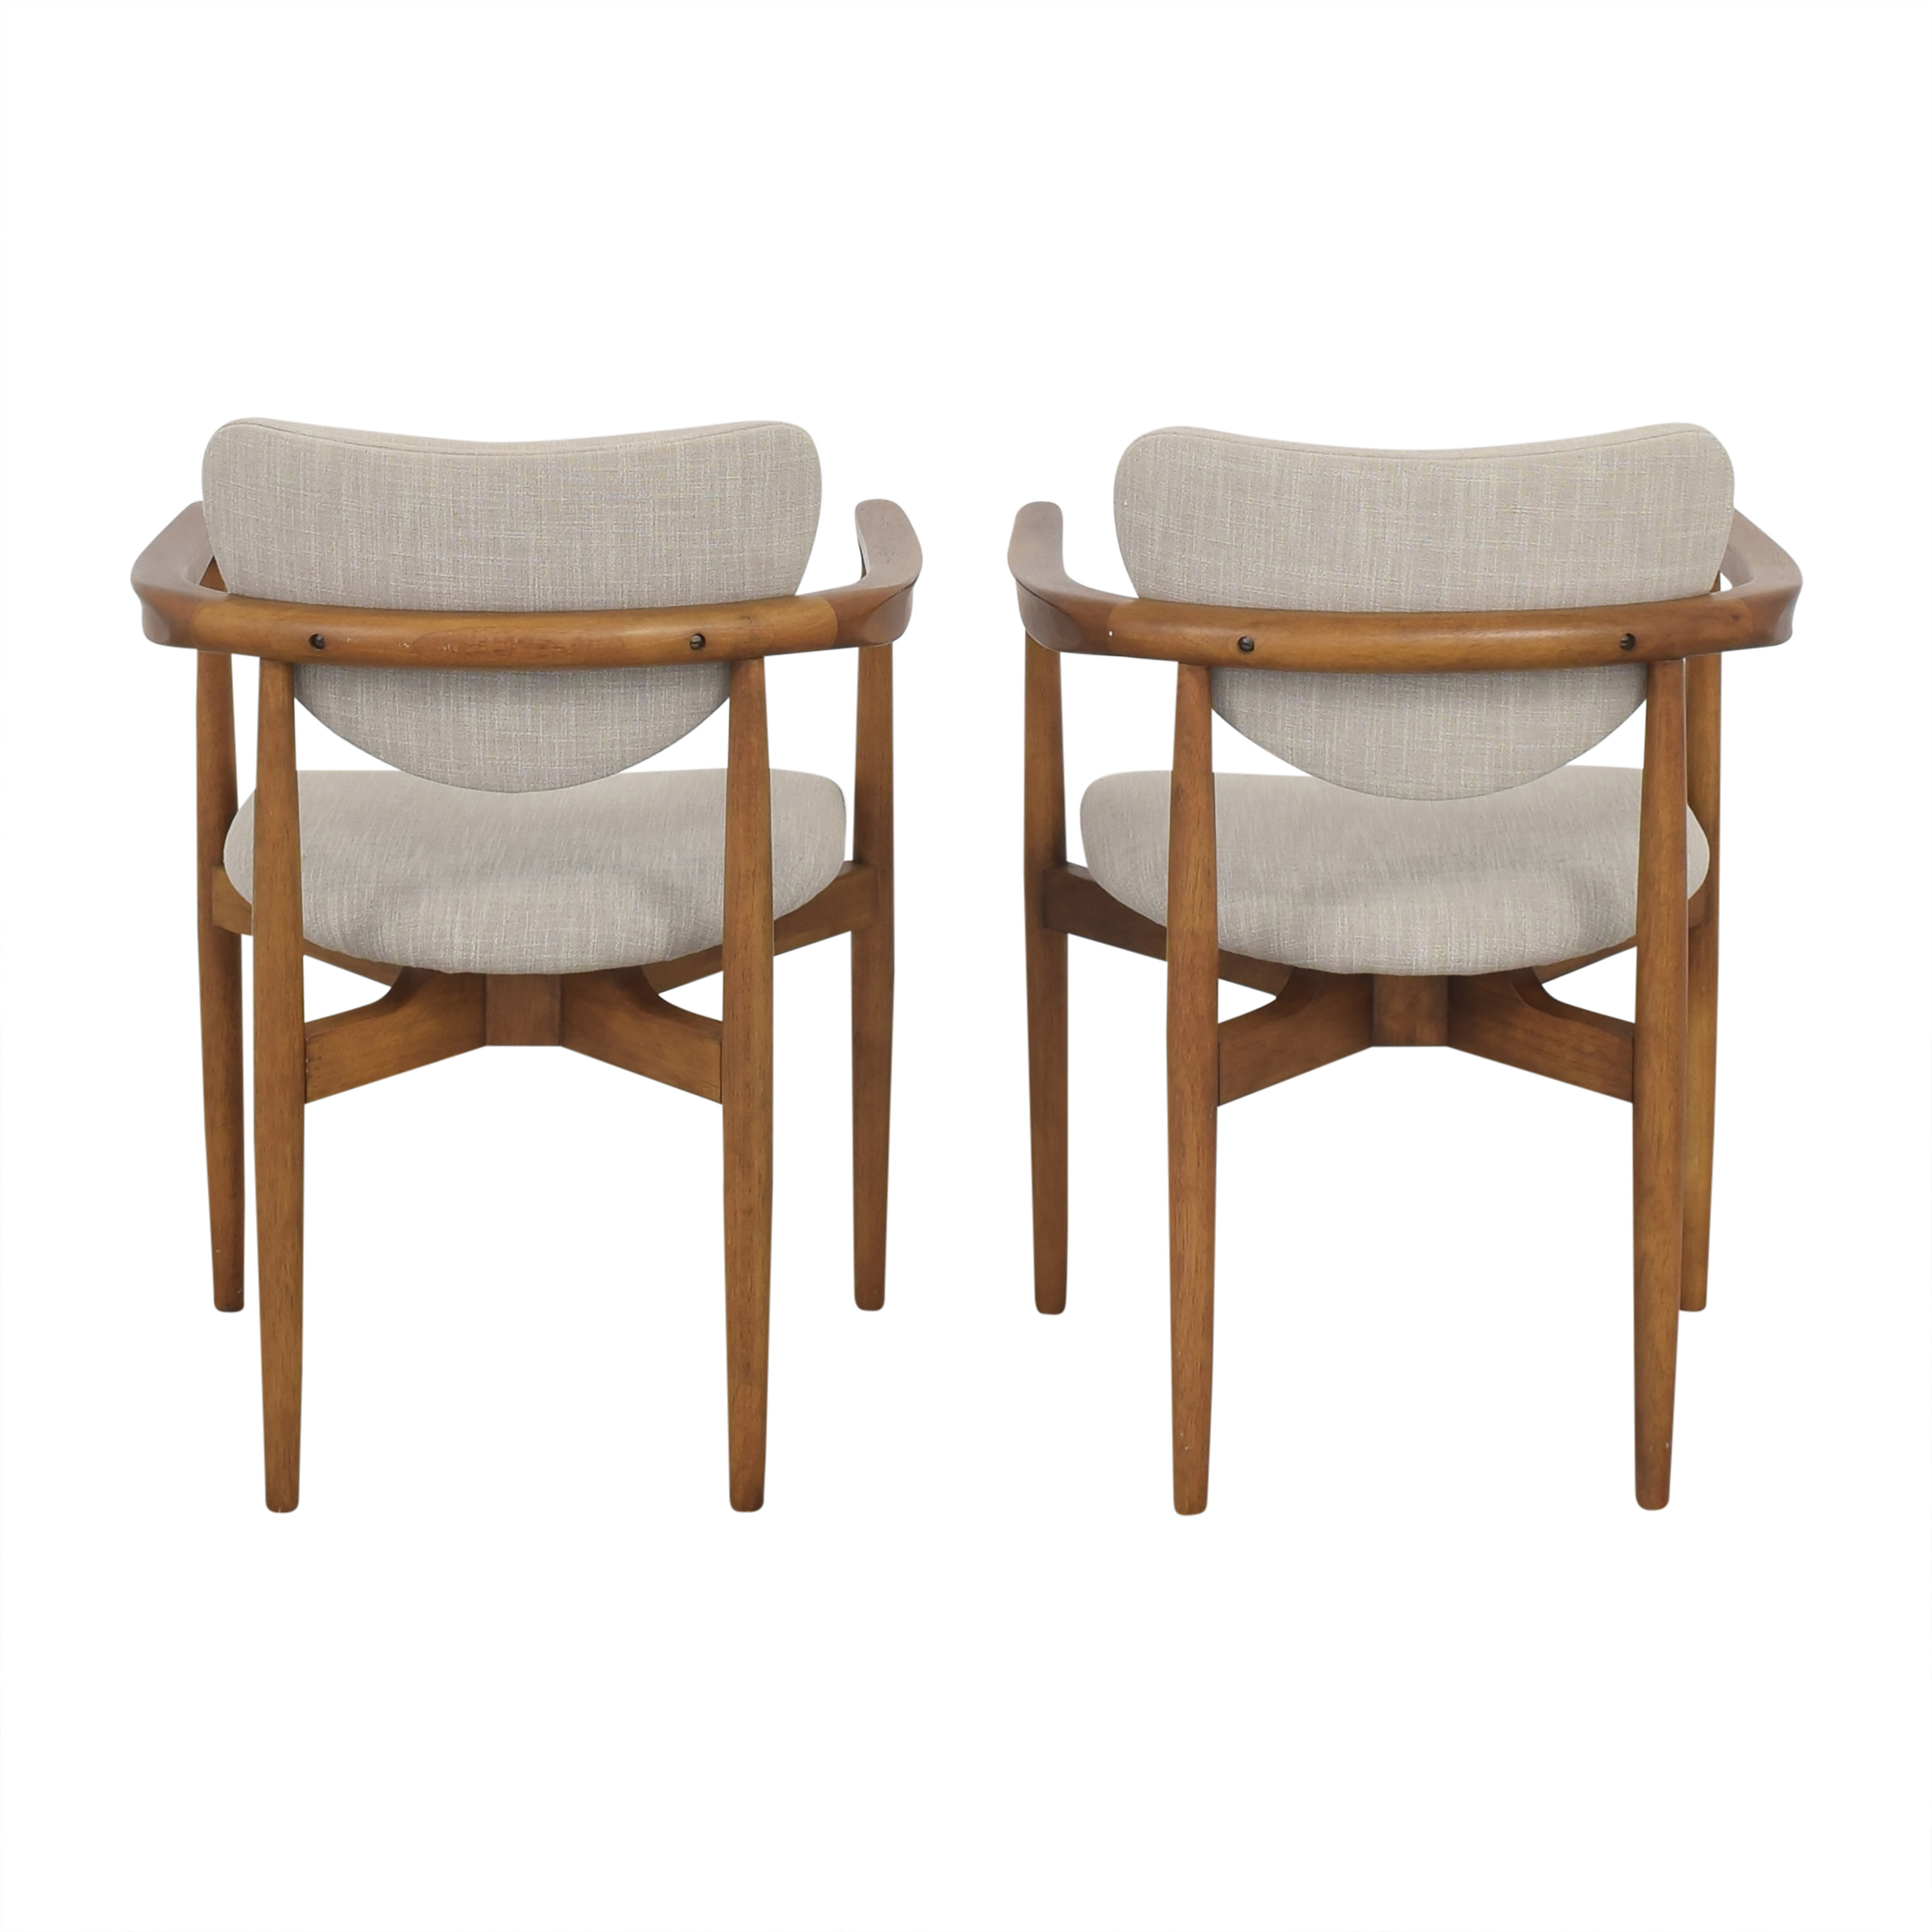 West Elm West Elm Dane Upholstered Dining Armchairs Chairs